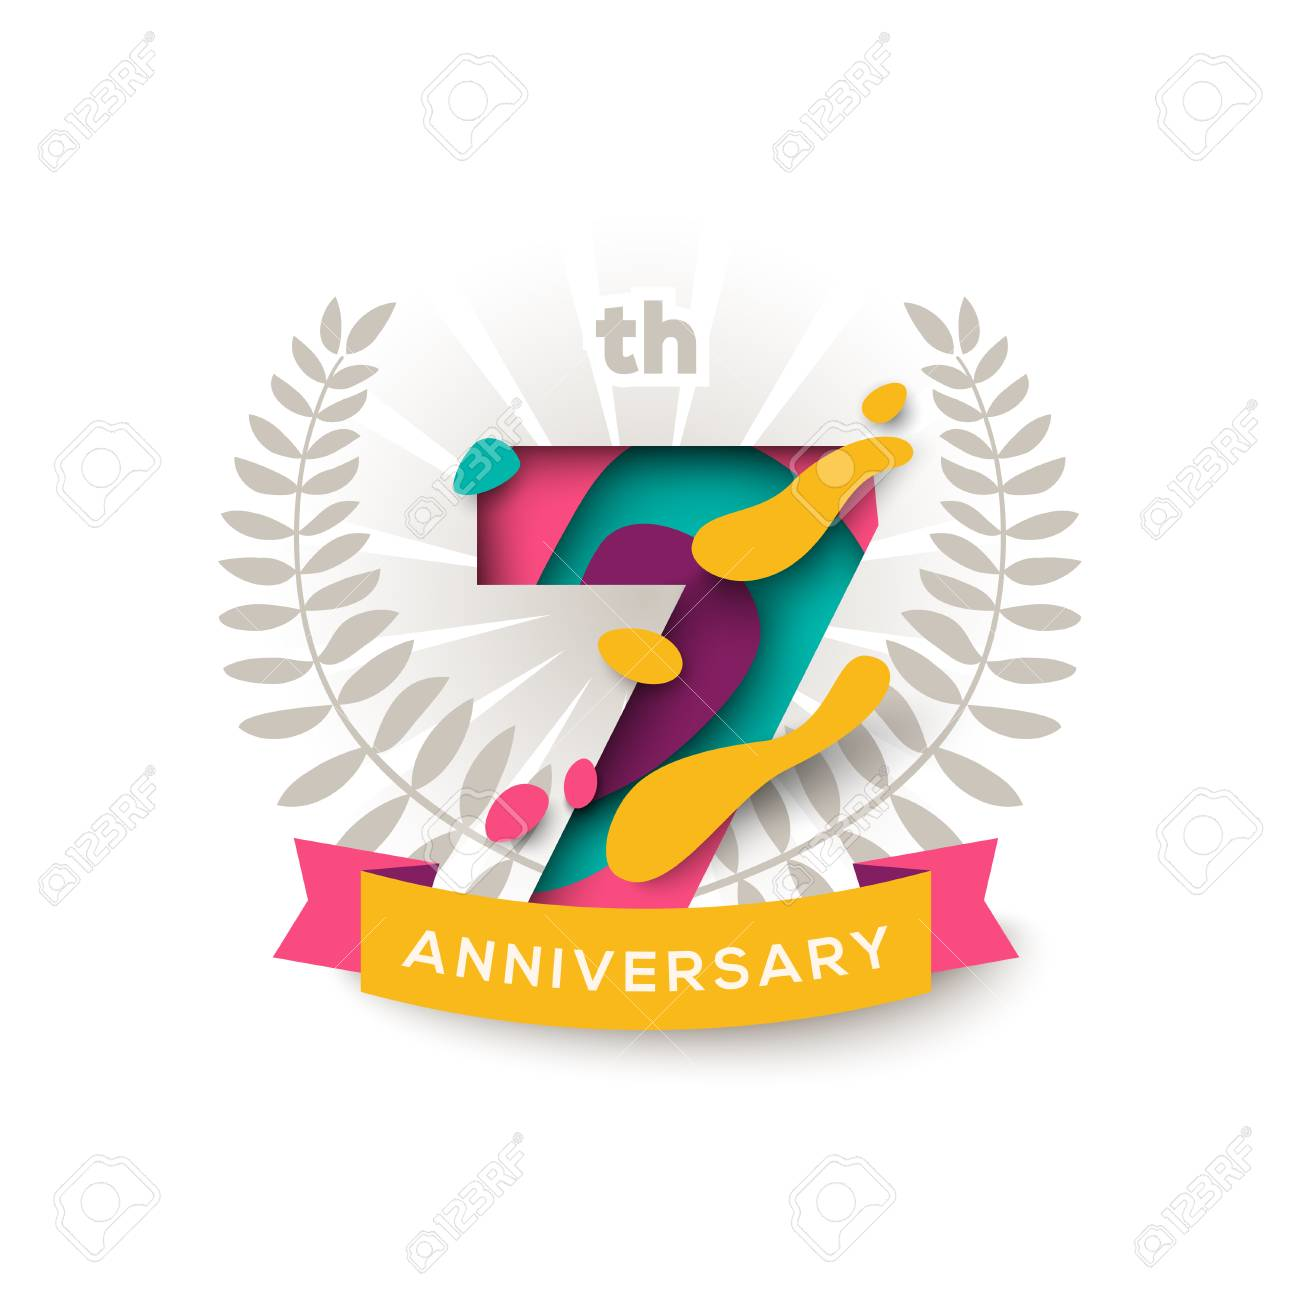 Seven Years Anniversary Royalty Free Cliparts, Vectors, And Stock ...